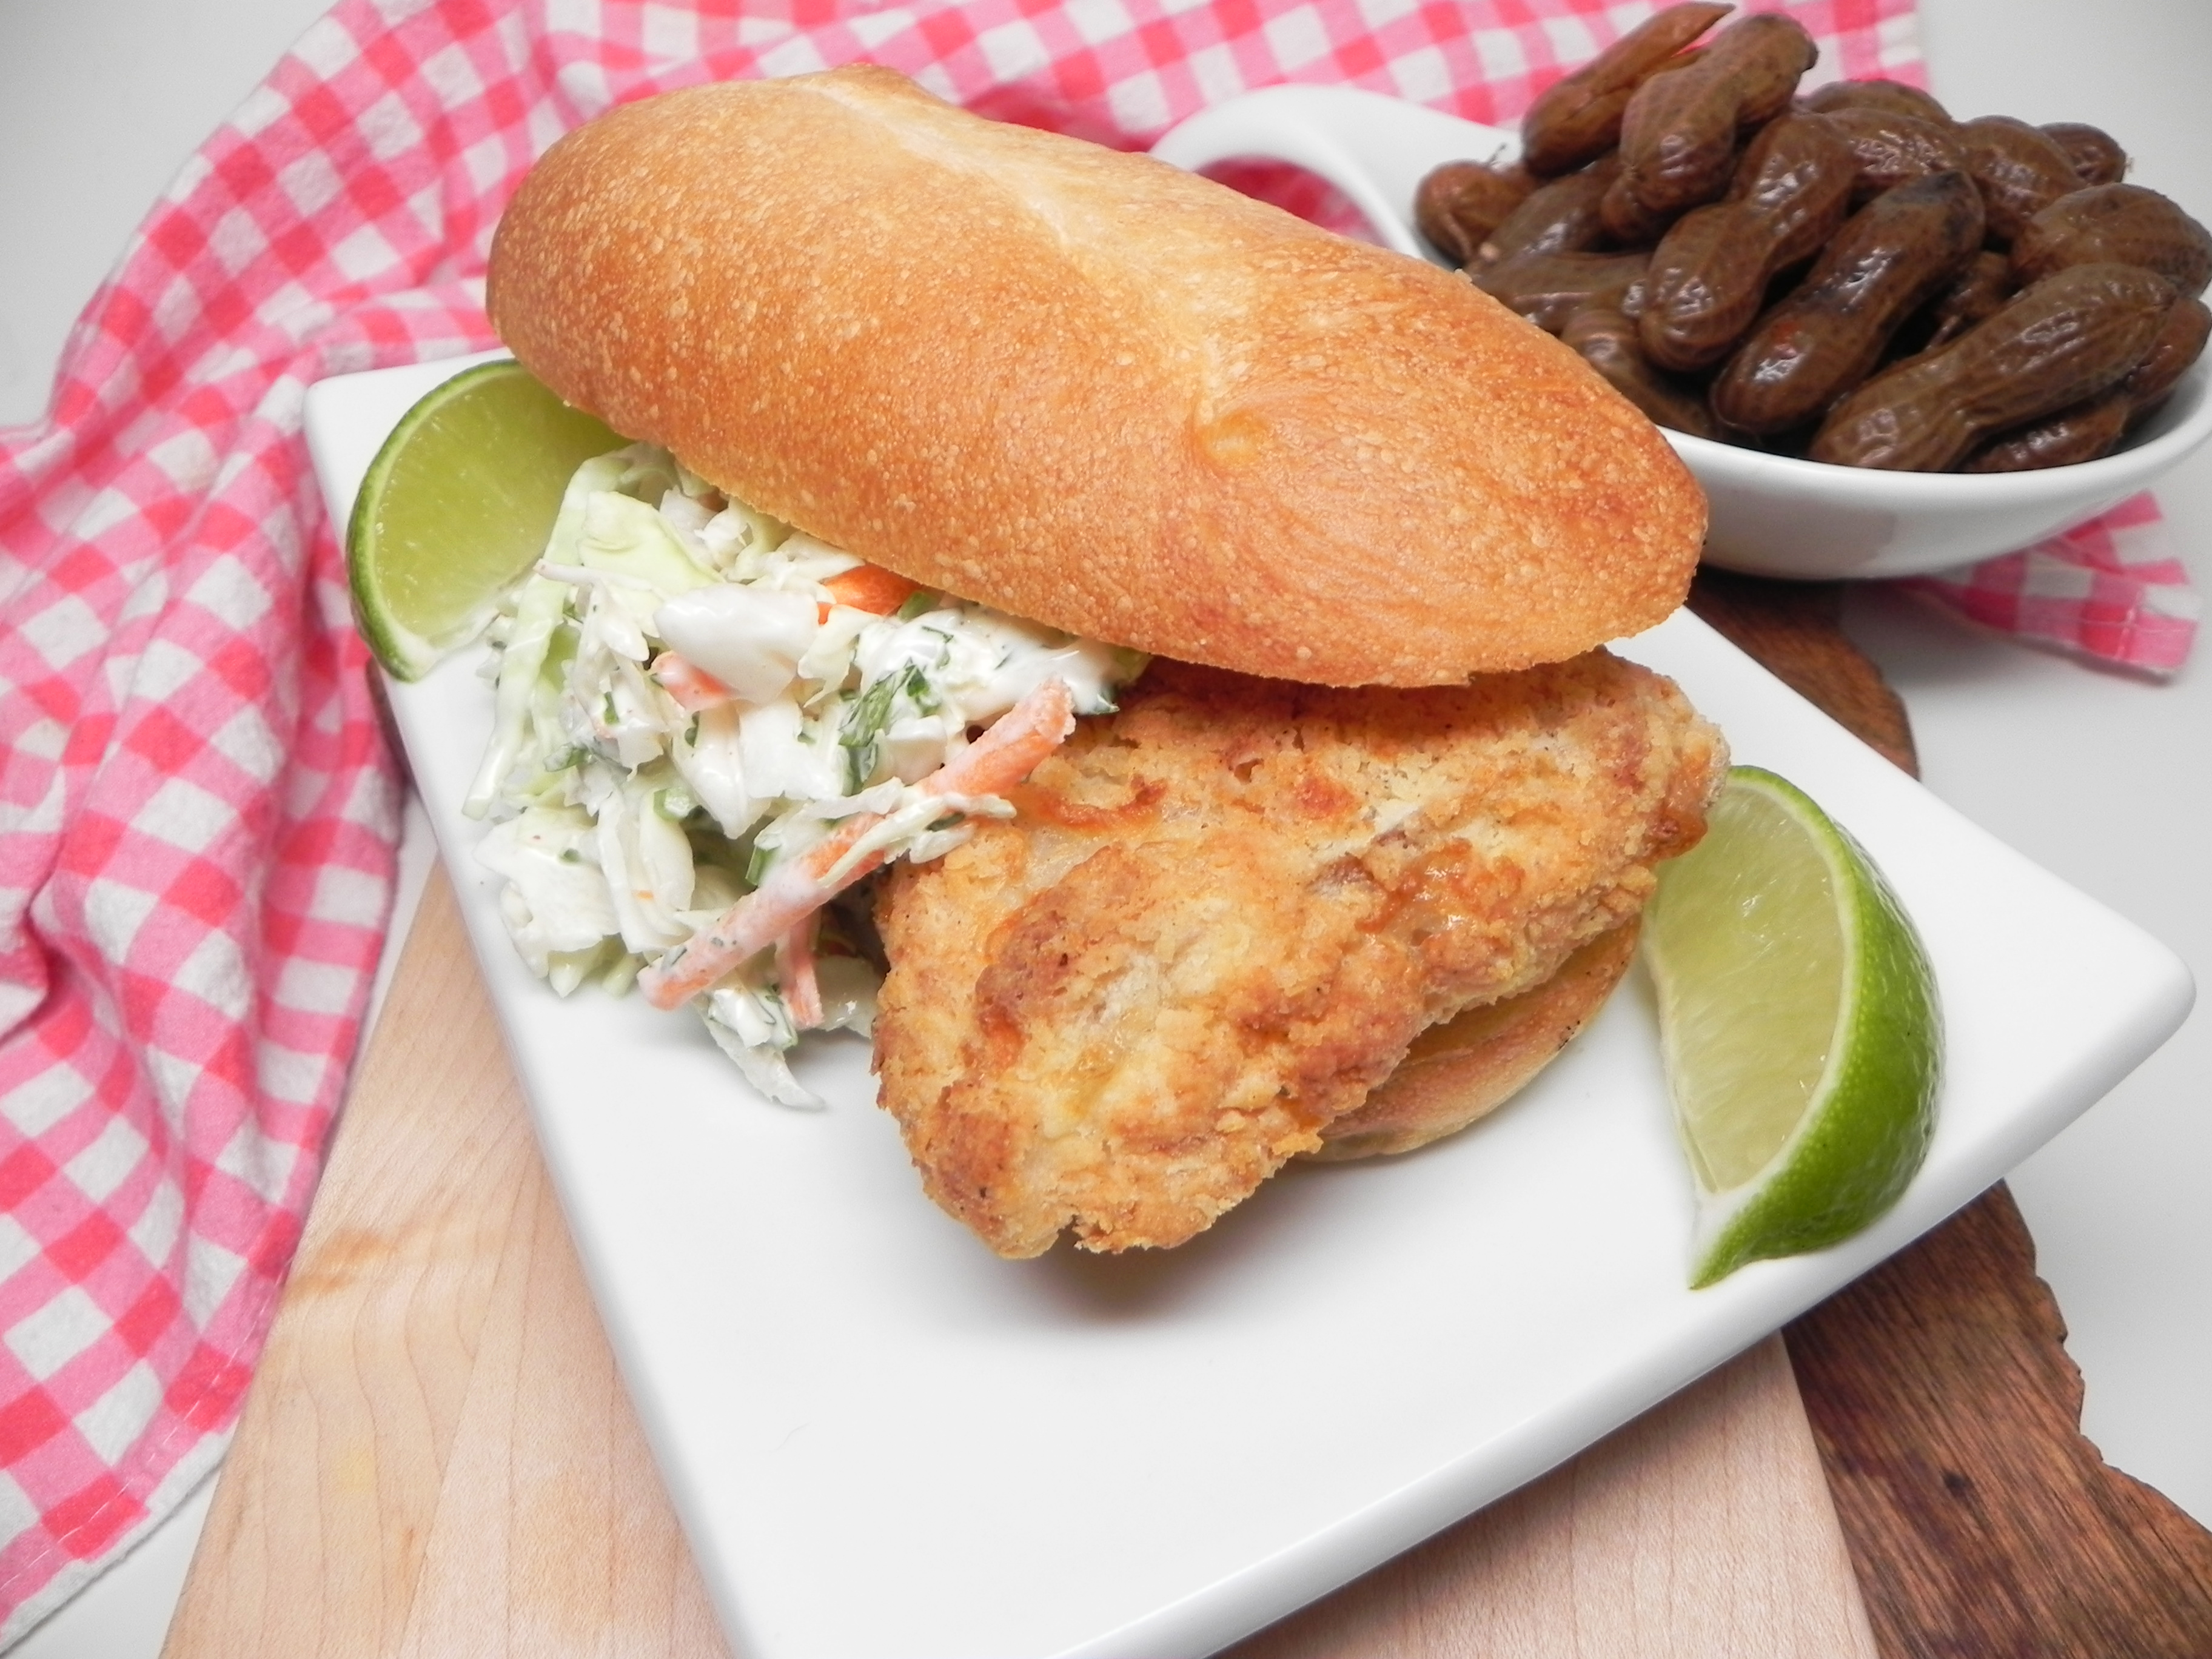 """Crispy air-fried white fish are topped with chipotle coleslaw and served on toasted hoagie rolls. """"These turned out great,"""" raves Soup Loving Nicole. """"The chipotle and cilantro in the slaw was a nice change. Bonus is that the leftover fish stayed crispy in the fridge overnight, which is something you will not get with a deep fry."""""""